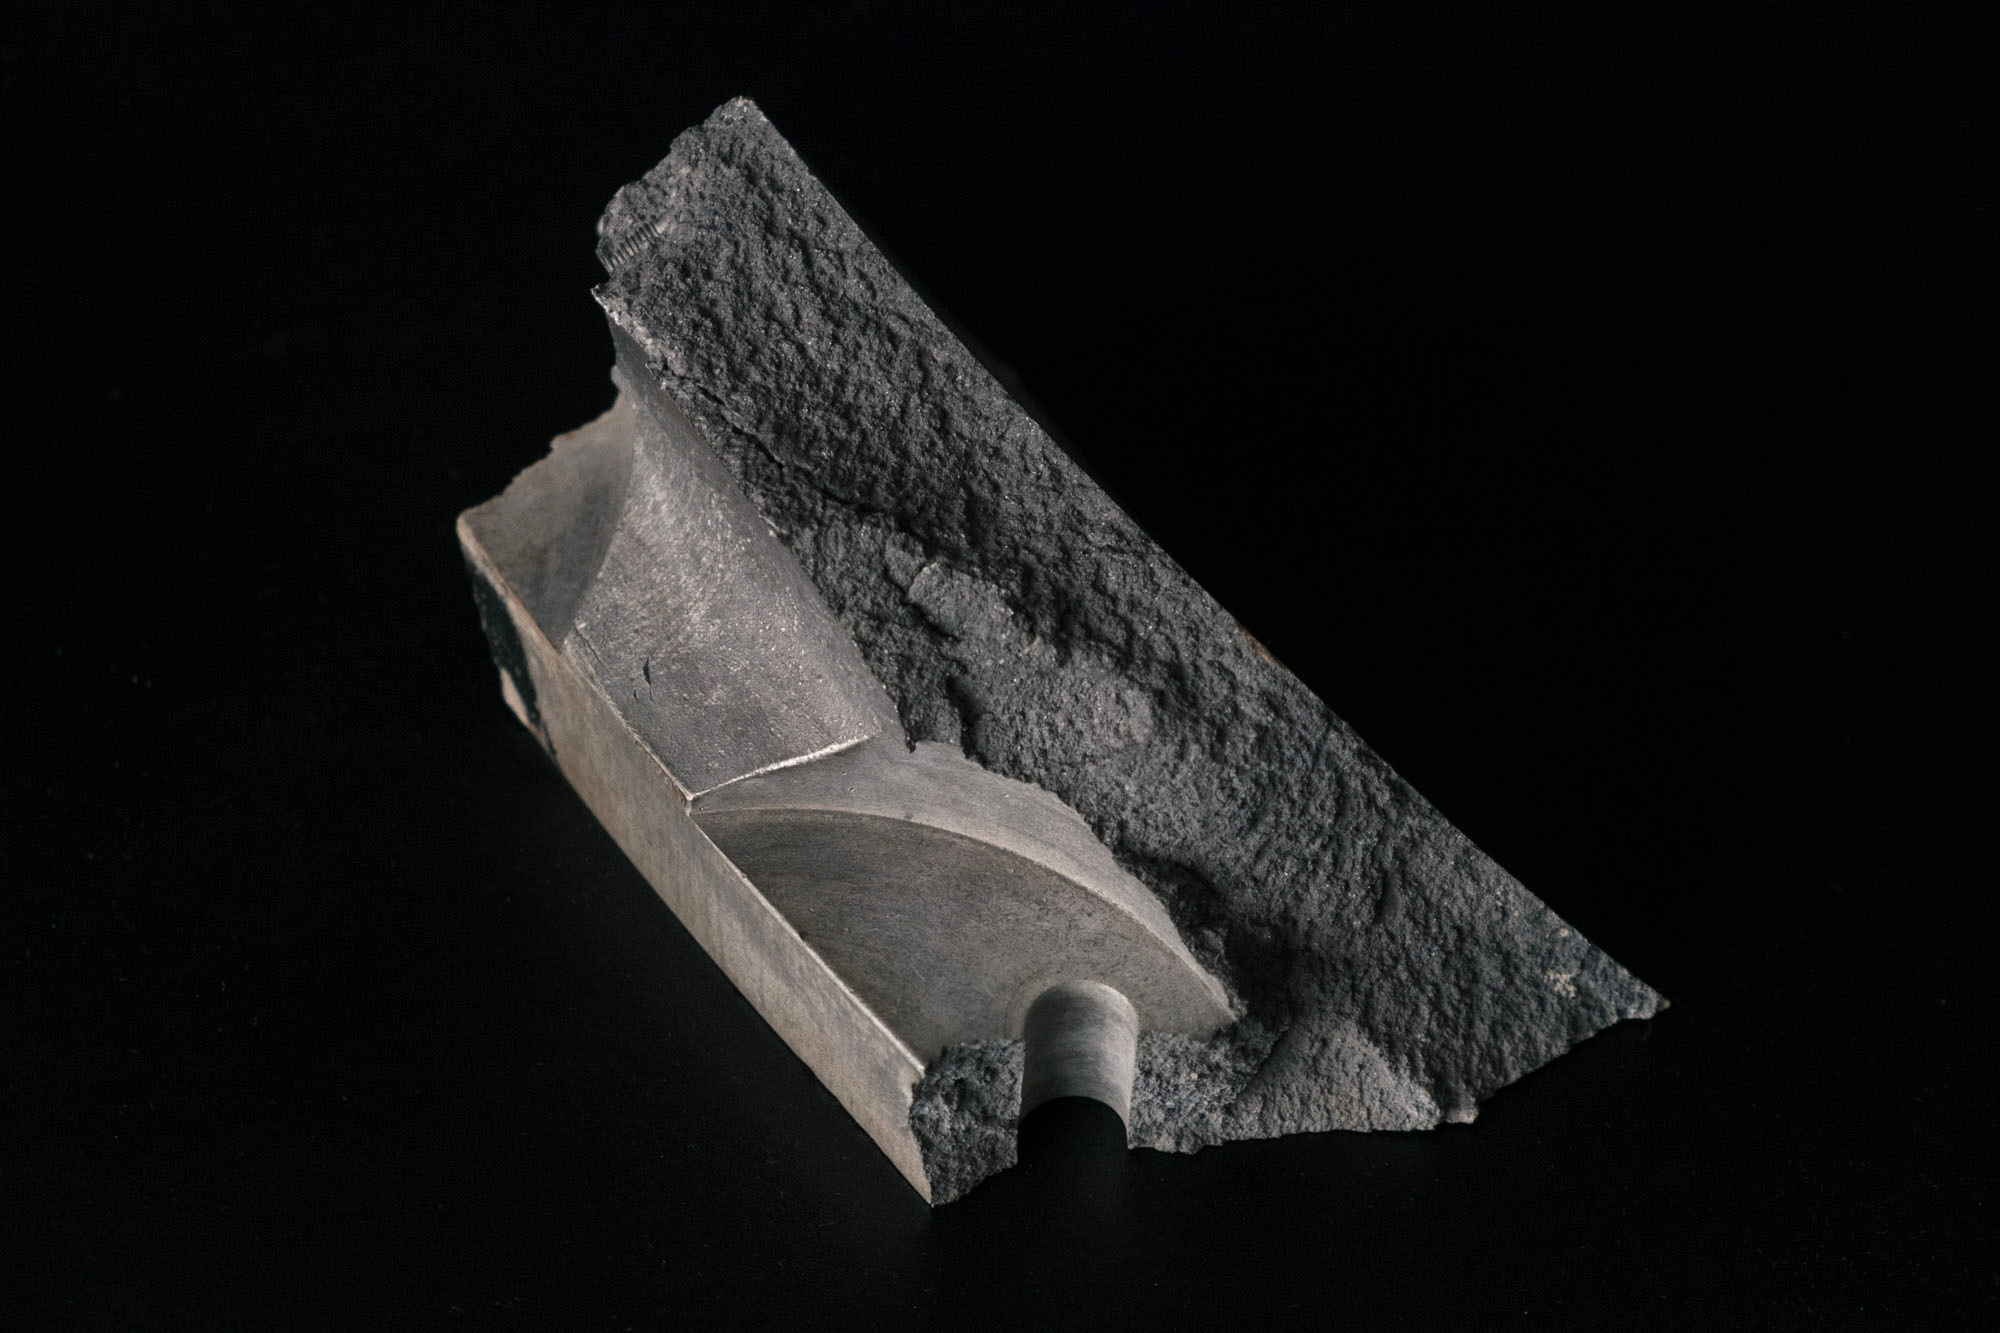 On private land in the western U.S., Coster-Mullen found this fragment of what he believes is bomb casing from a test version of the Fat Man design.